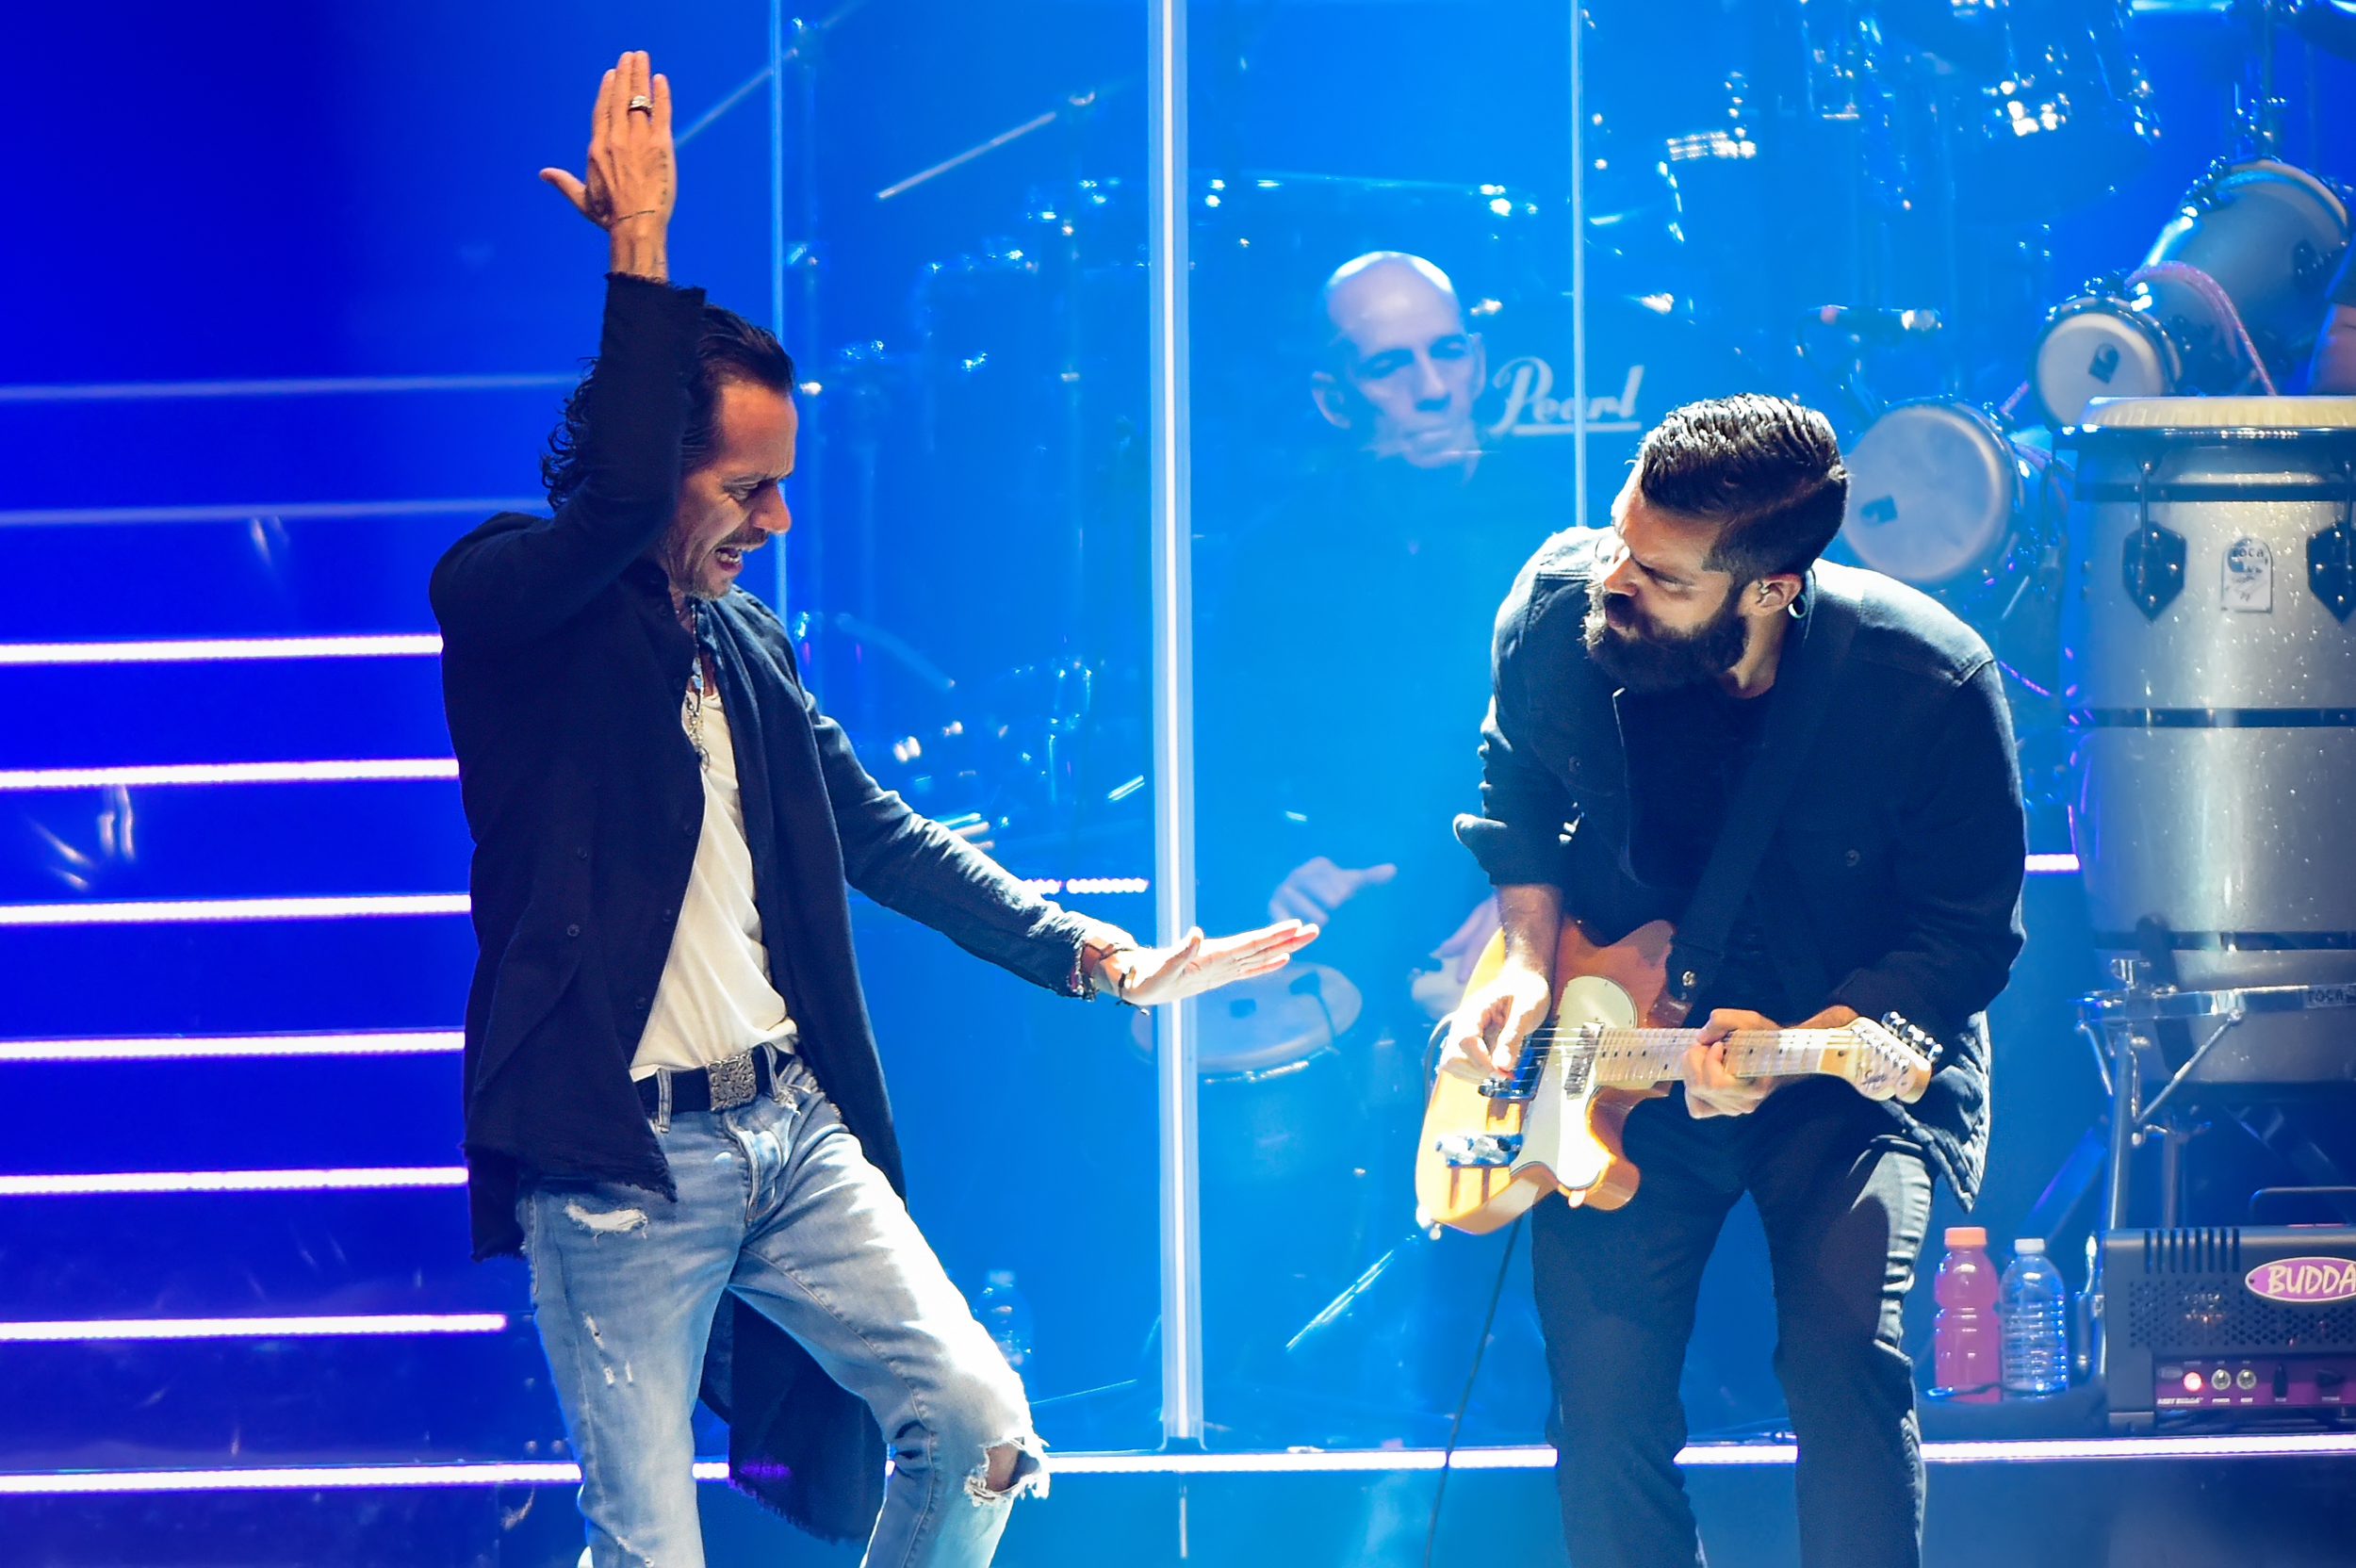 Marc Anthony (L) and Mario Guini (R) perform on the 2020 OPUS tour at the H.E.B. Center on March 1, 2020 in Cedar Park, Texas. Photo © Manuel Nauta